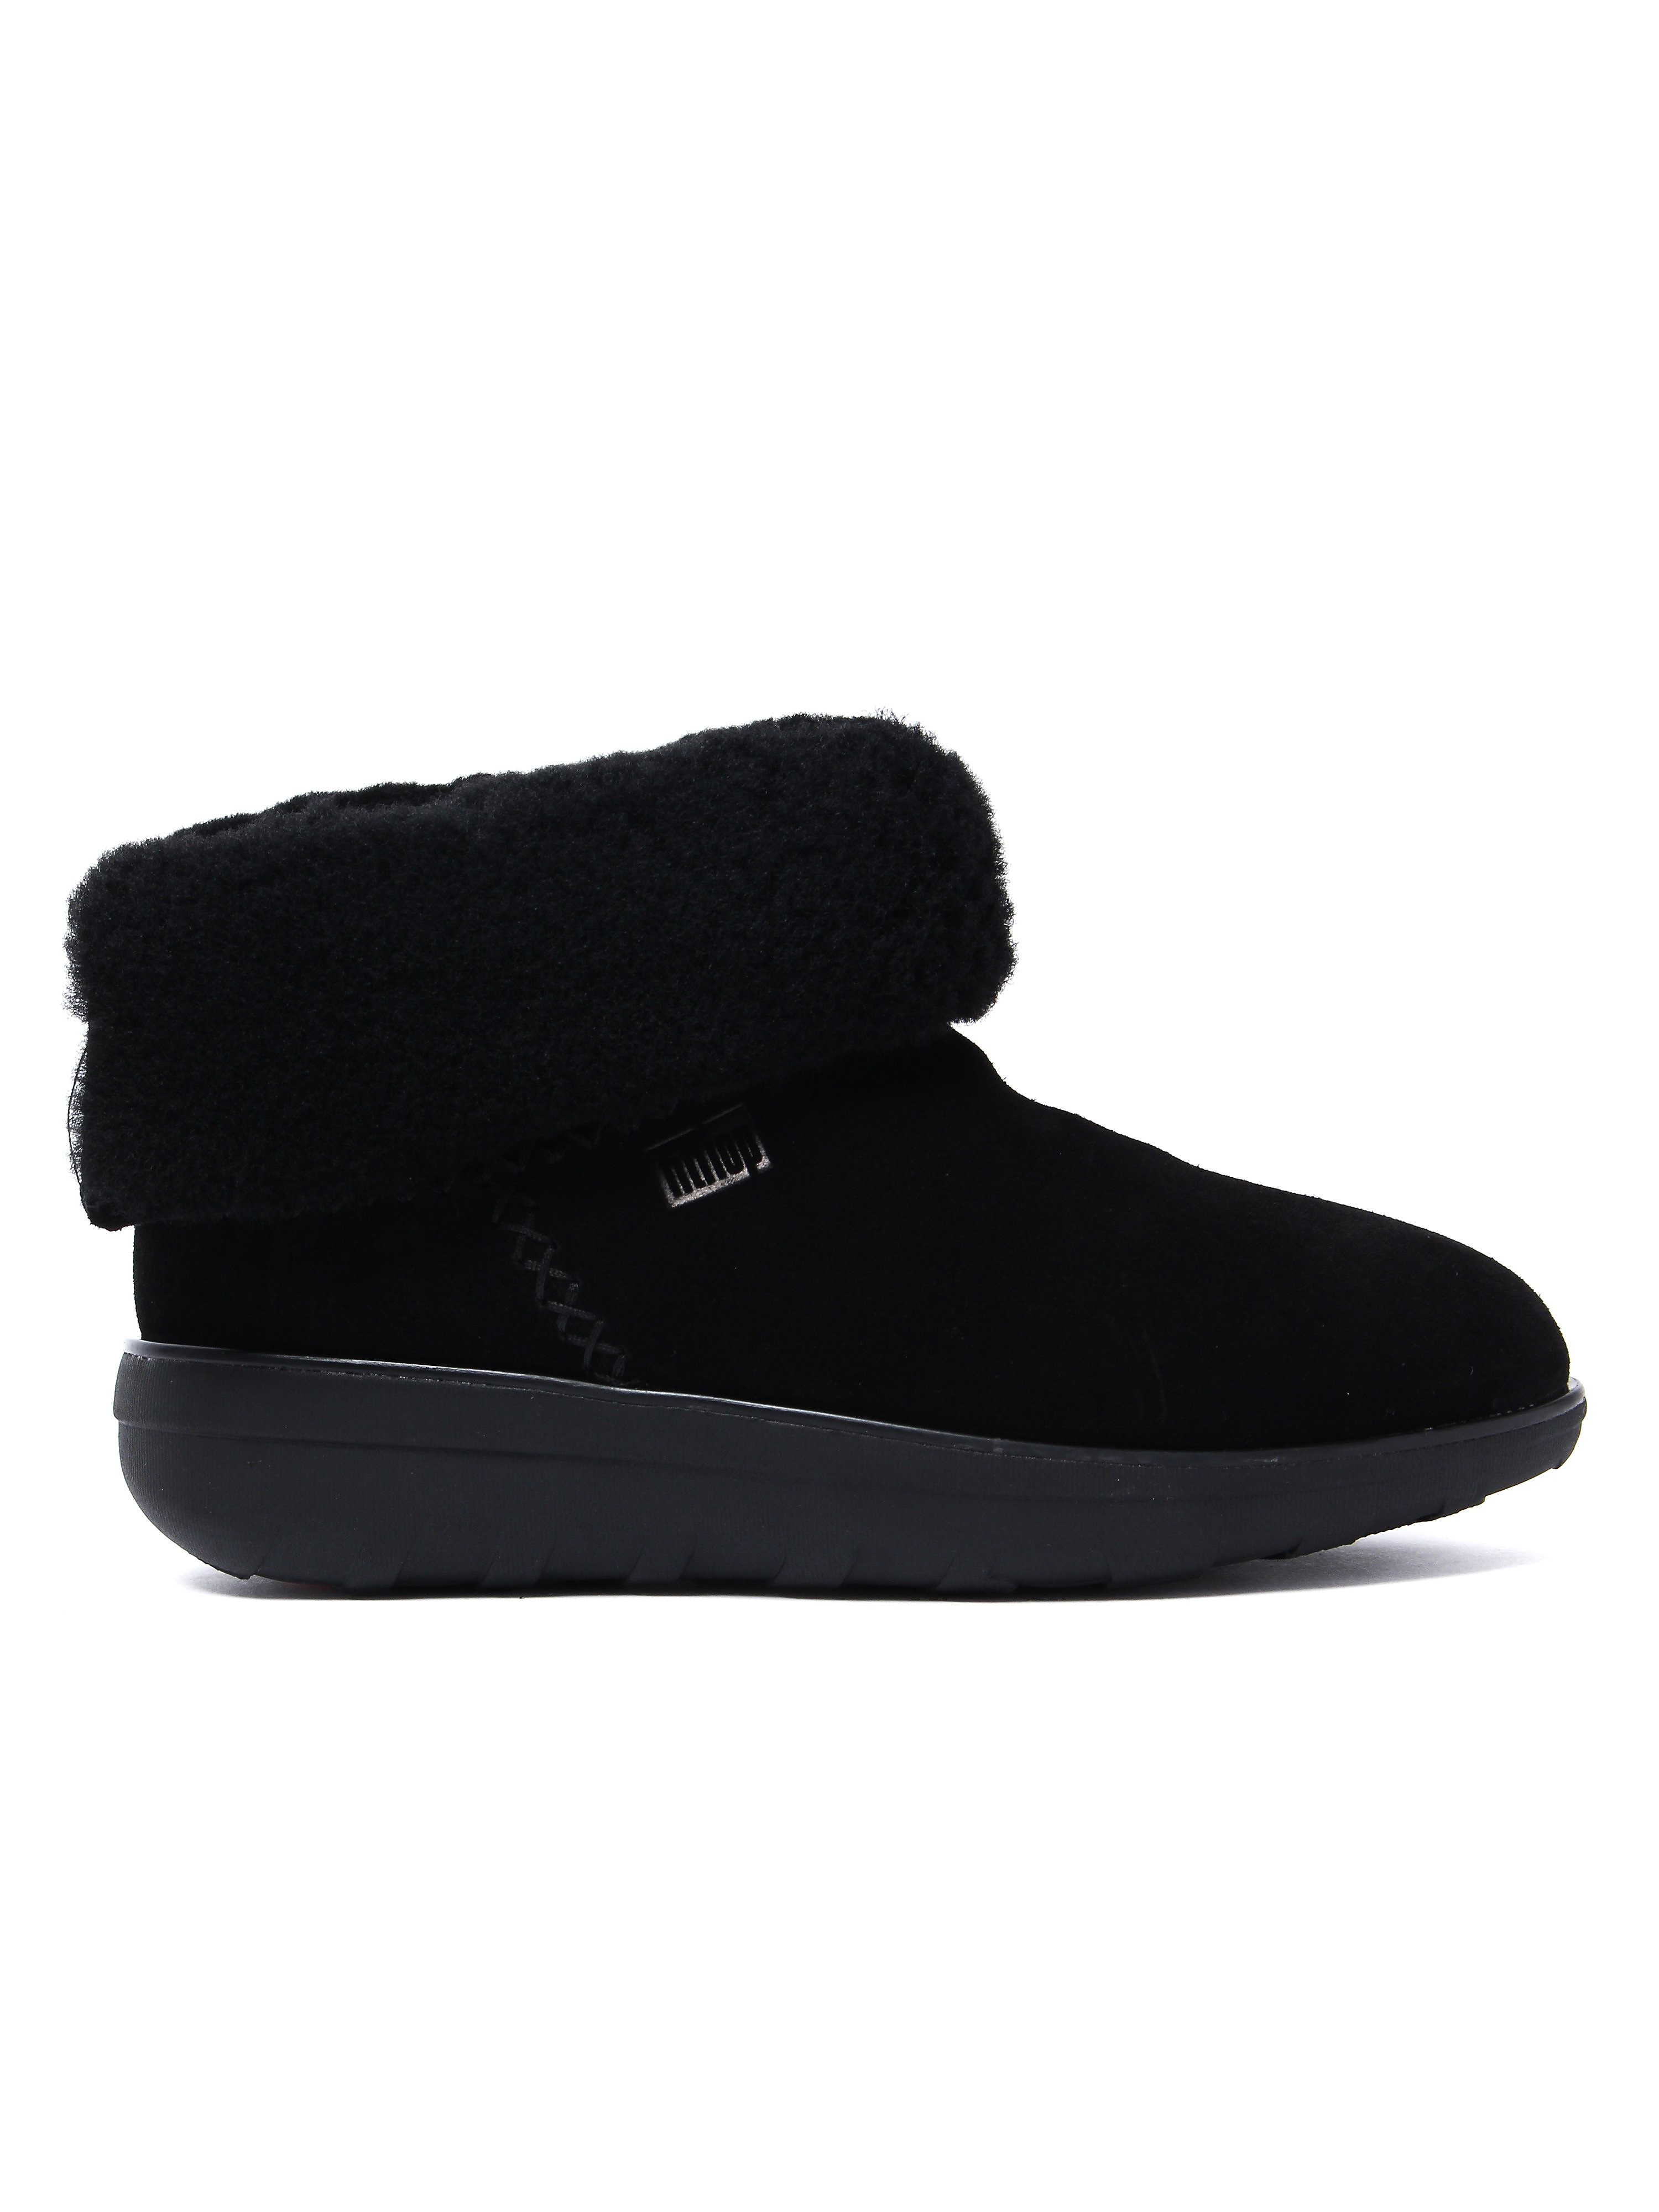 FitFlop Women's Mukluk Shorty 2 Boots - All Black Suede